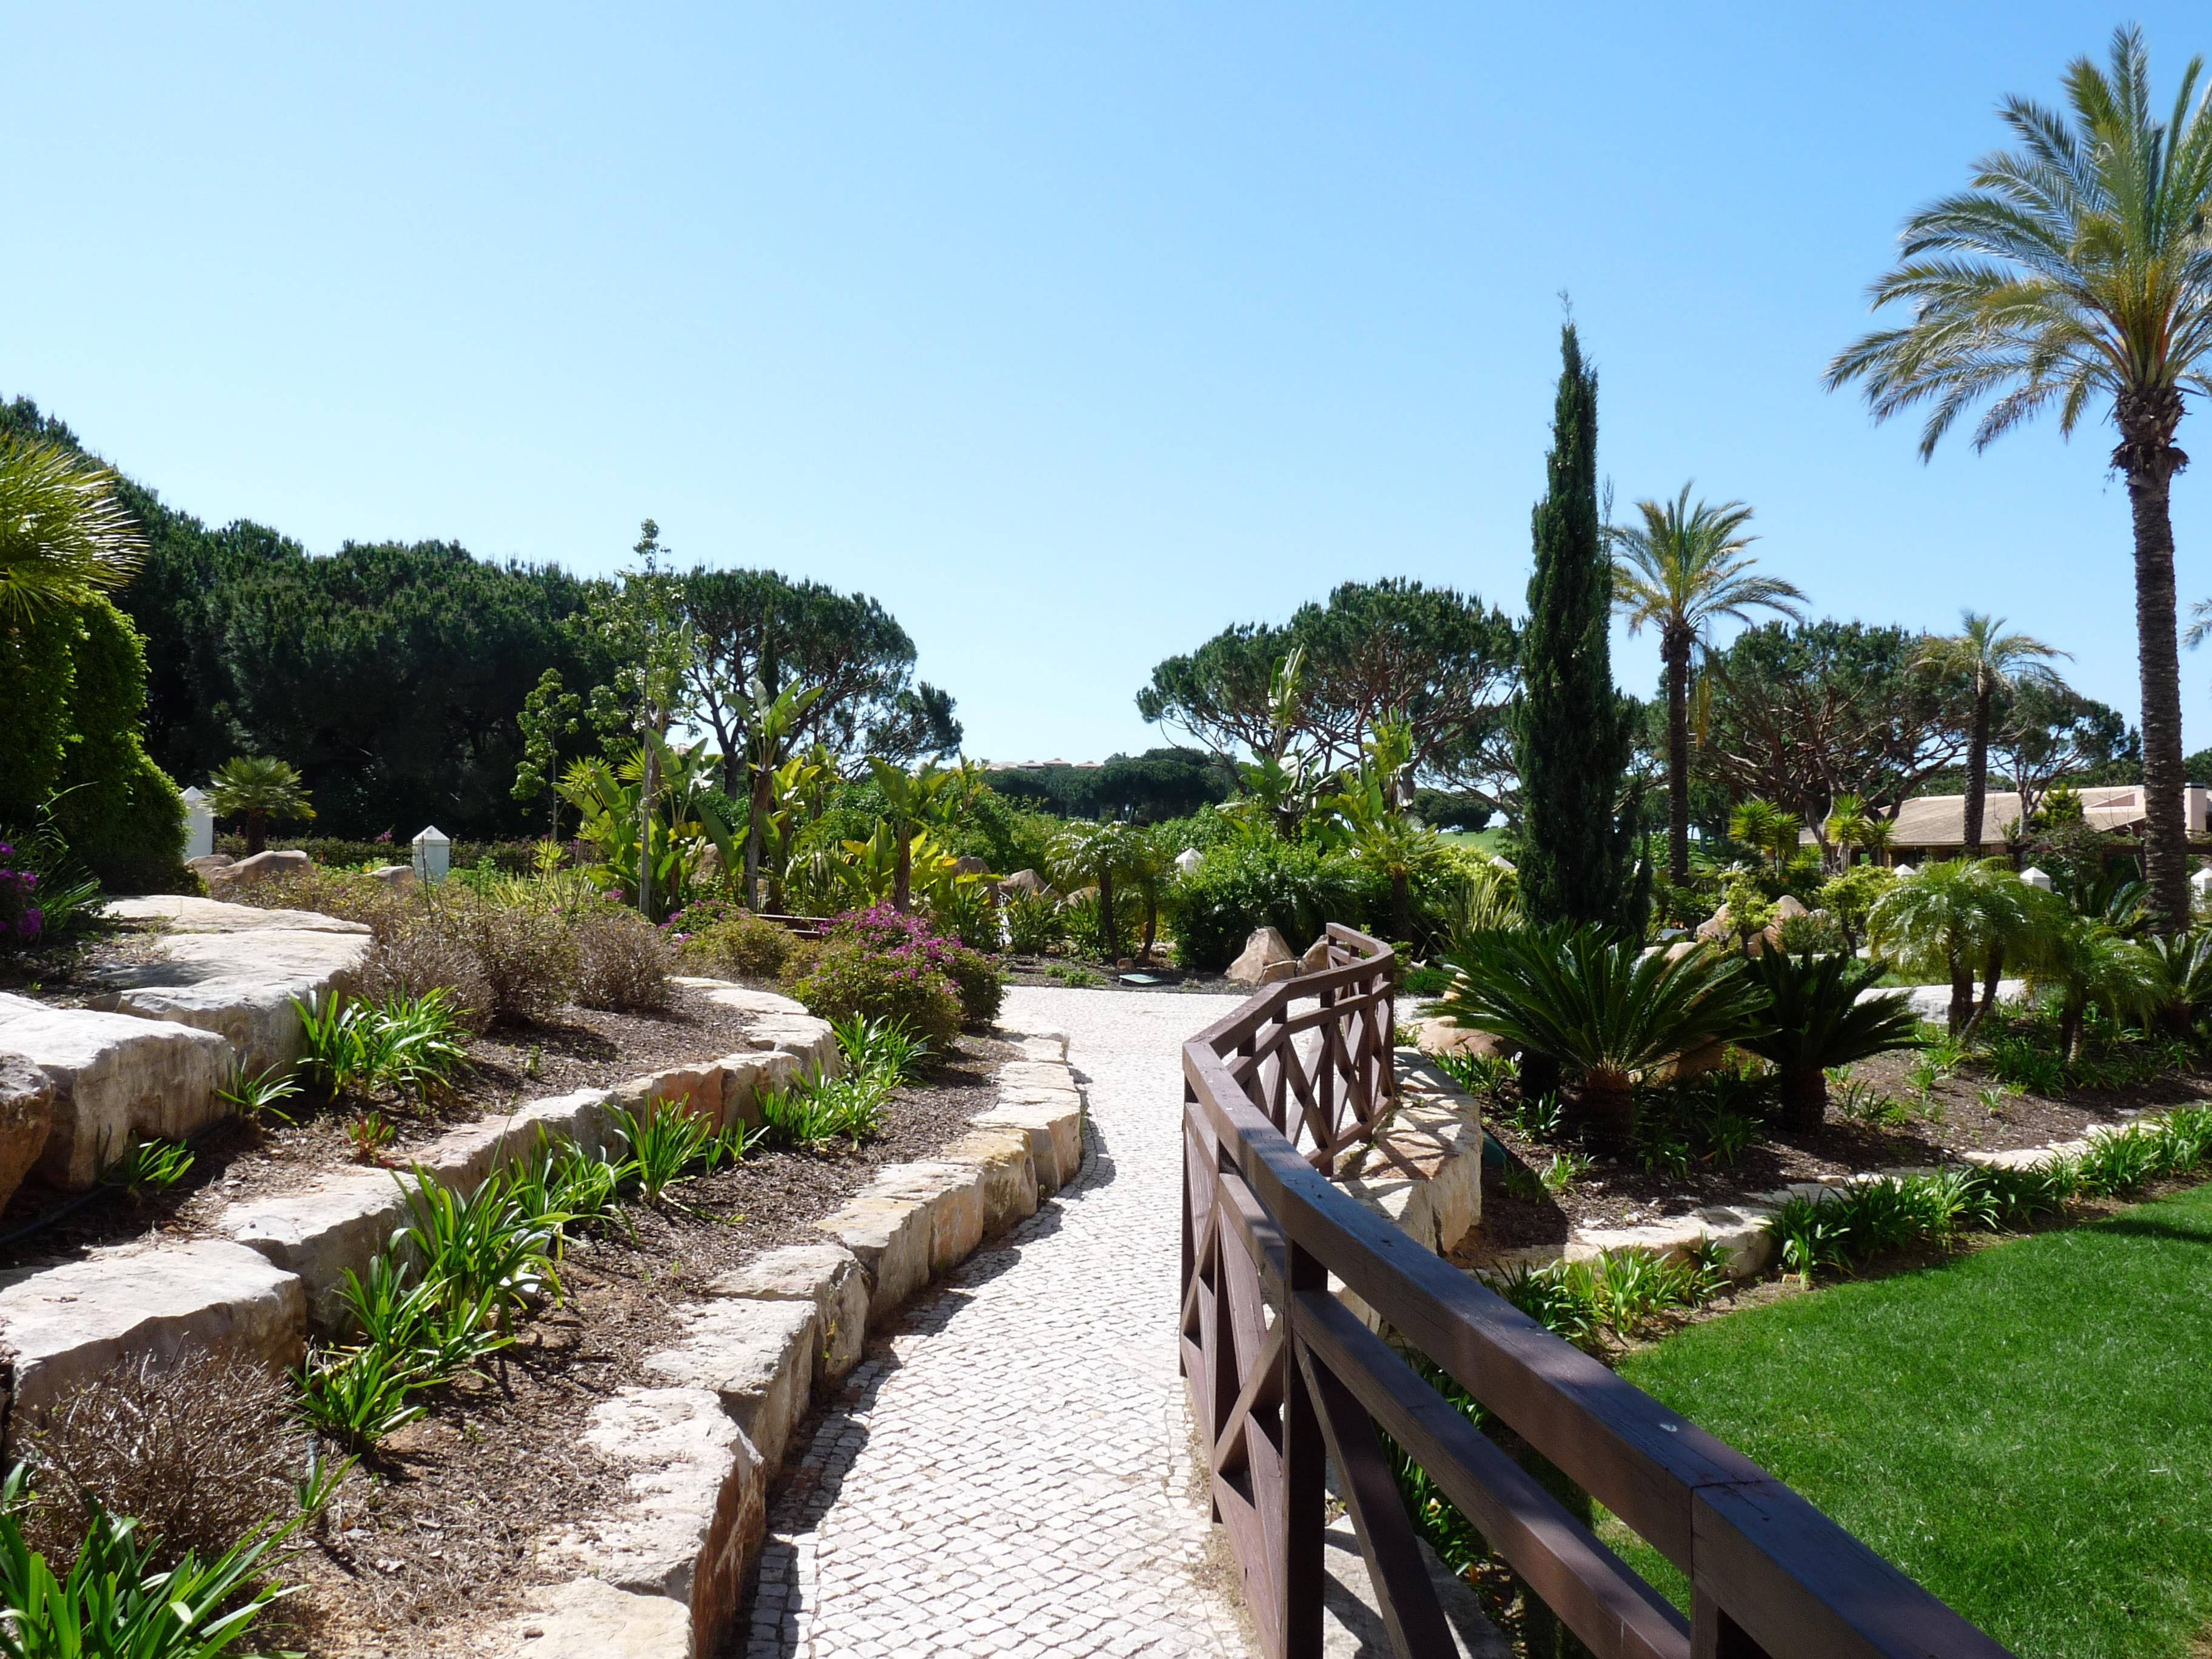 Apartment for Sale at Flat, 2 bedrooms, for Sale Loule, Algarve, 8125-615 Portugal